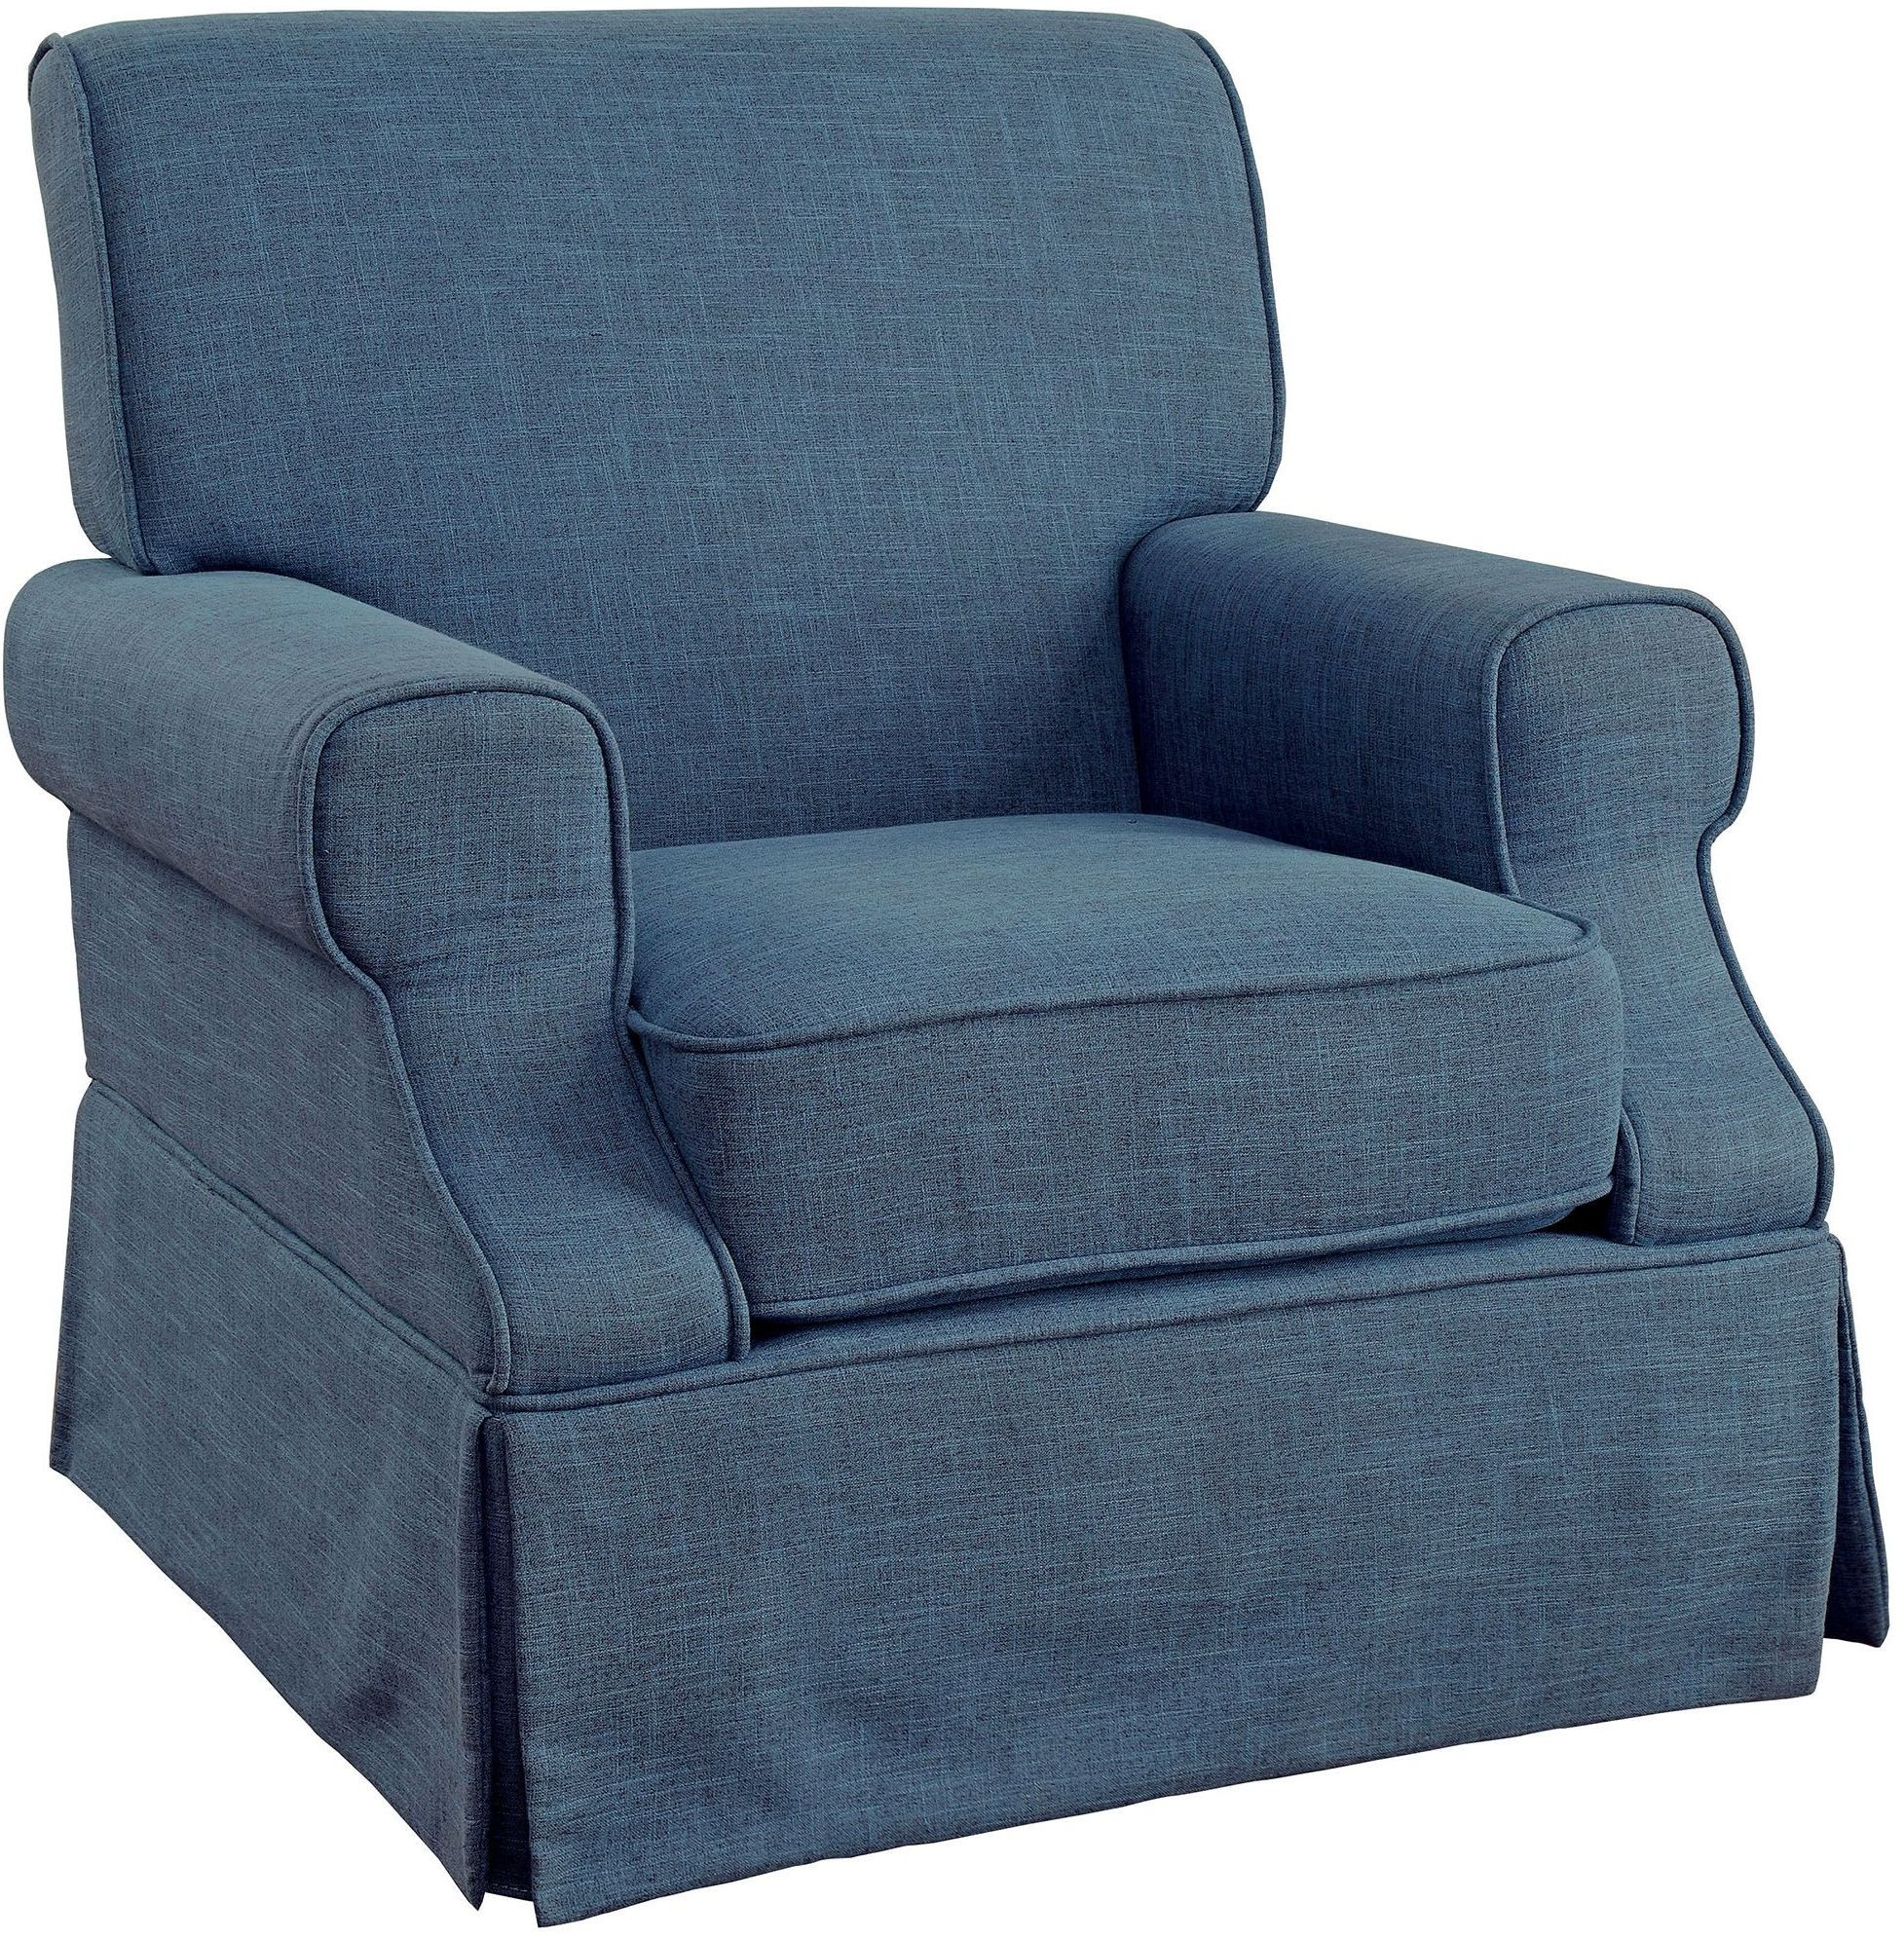 Blue Swivel Chair Leela Blue 360 Swivel Glider And Rocker Chair From Furniture